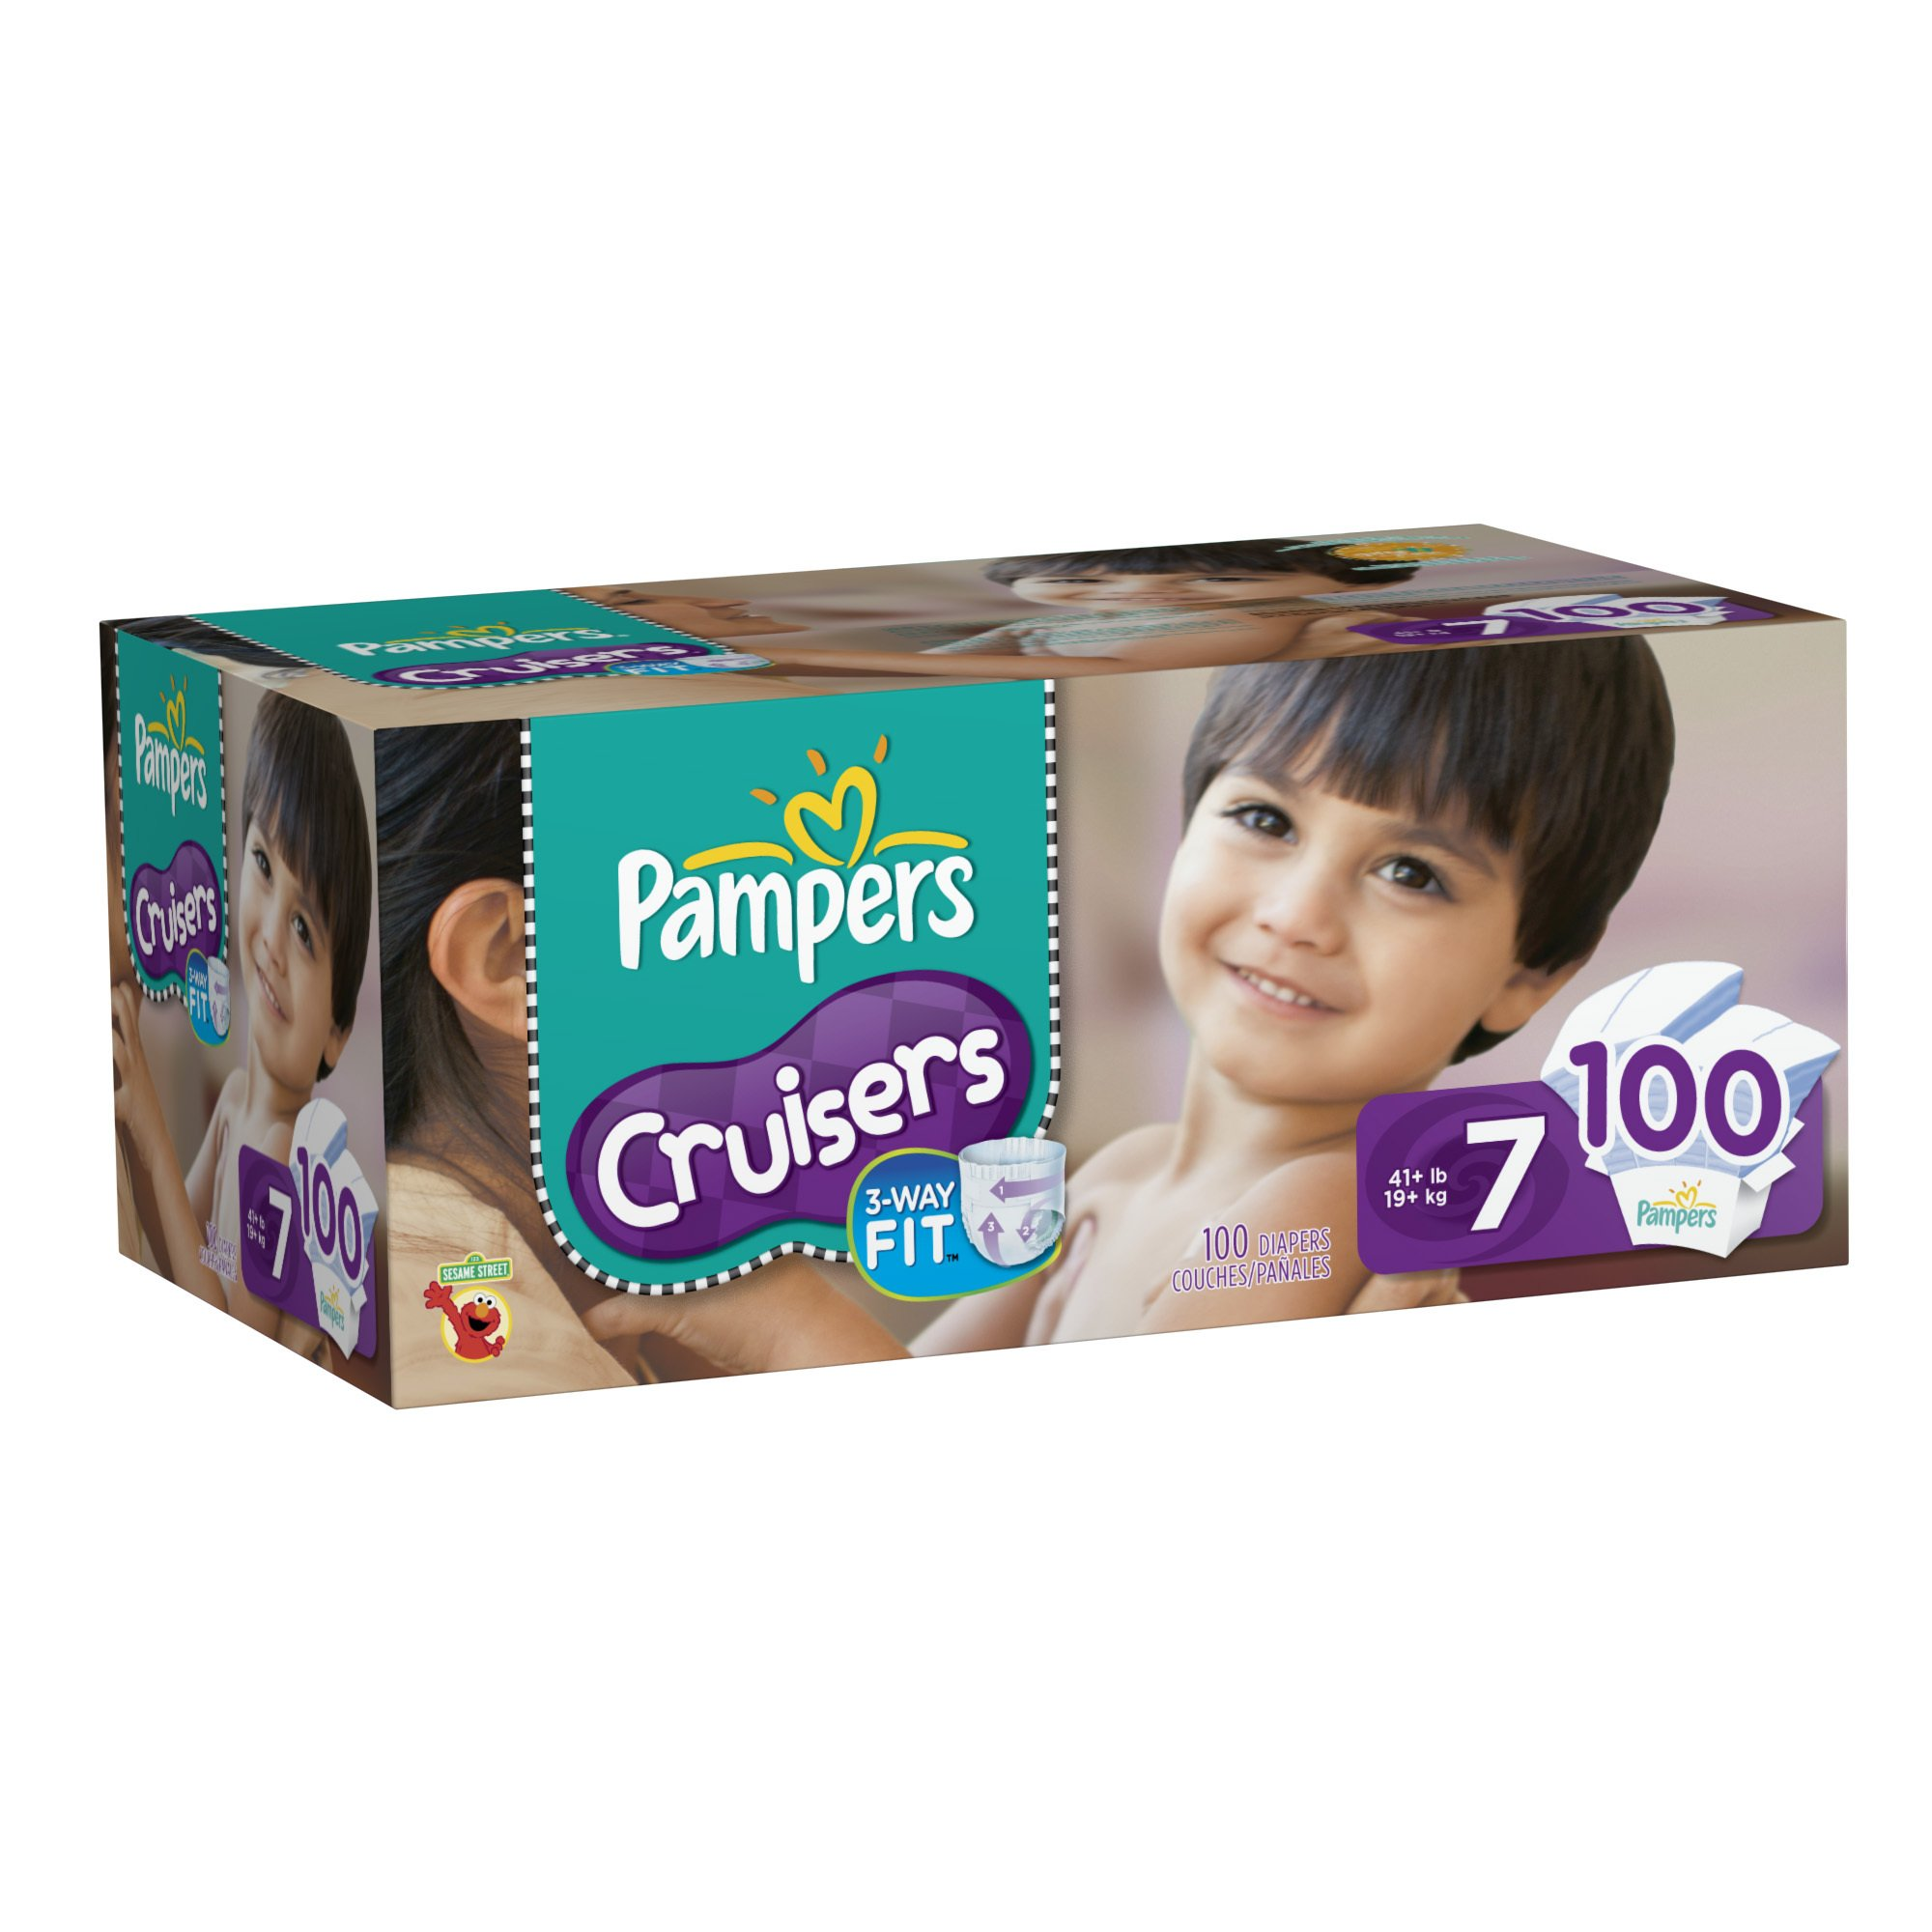 Pampers Cruisers Diapers, Economy Pack Plus, Size 7, 100 Count by Pampers (Image #1)